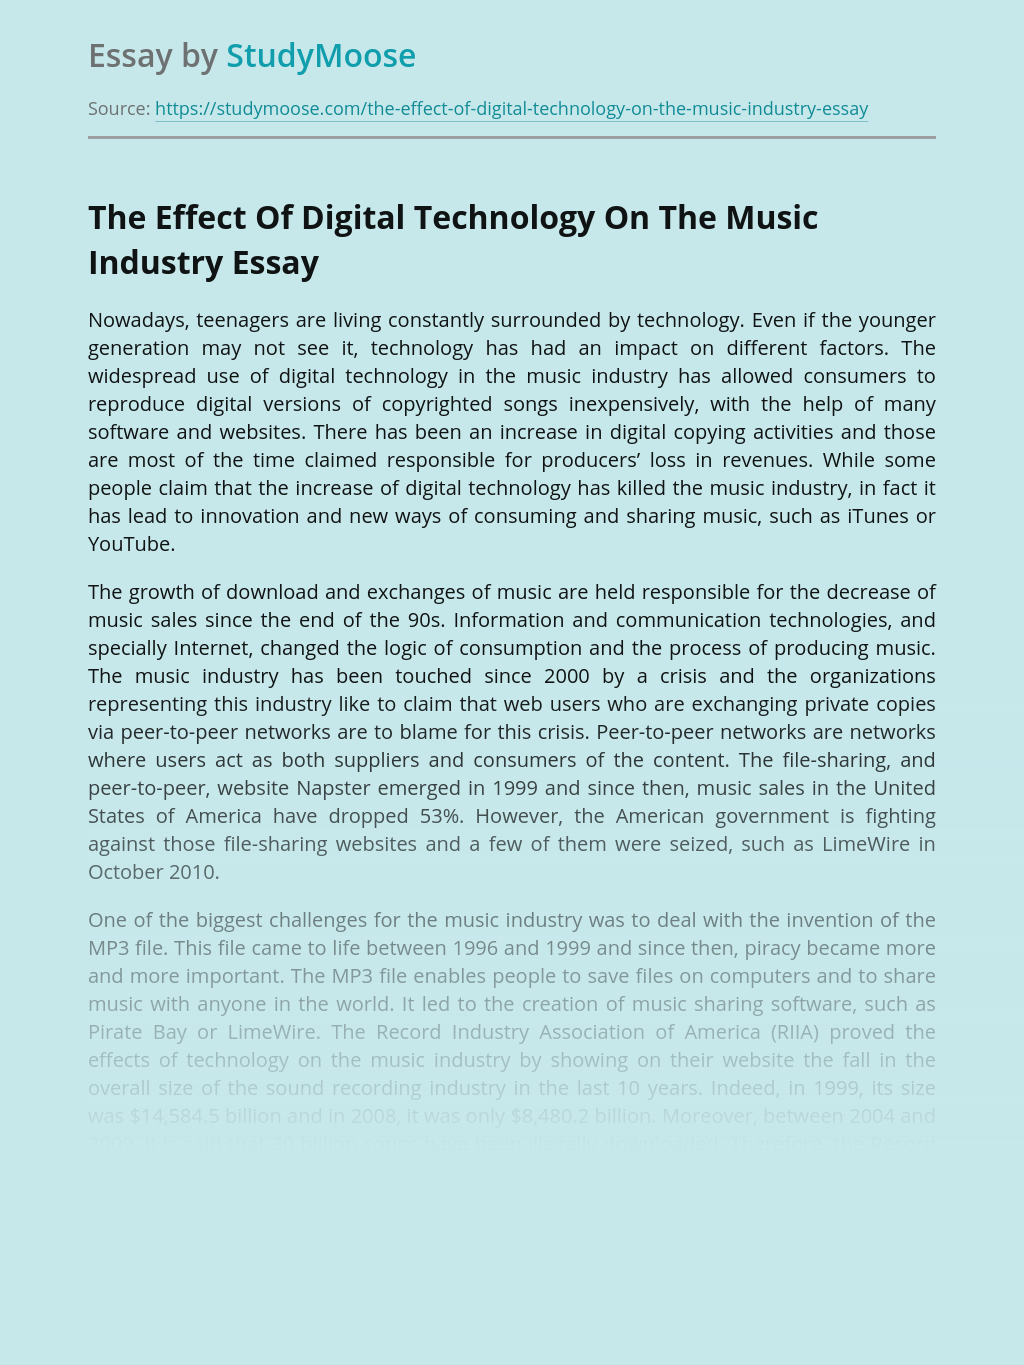 The Effect Of Digital Technology On The Music Industry